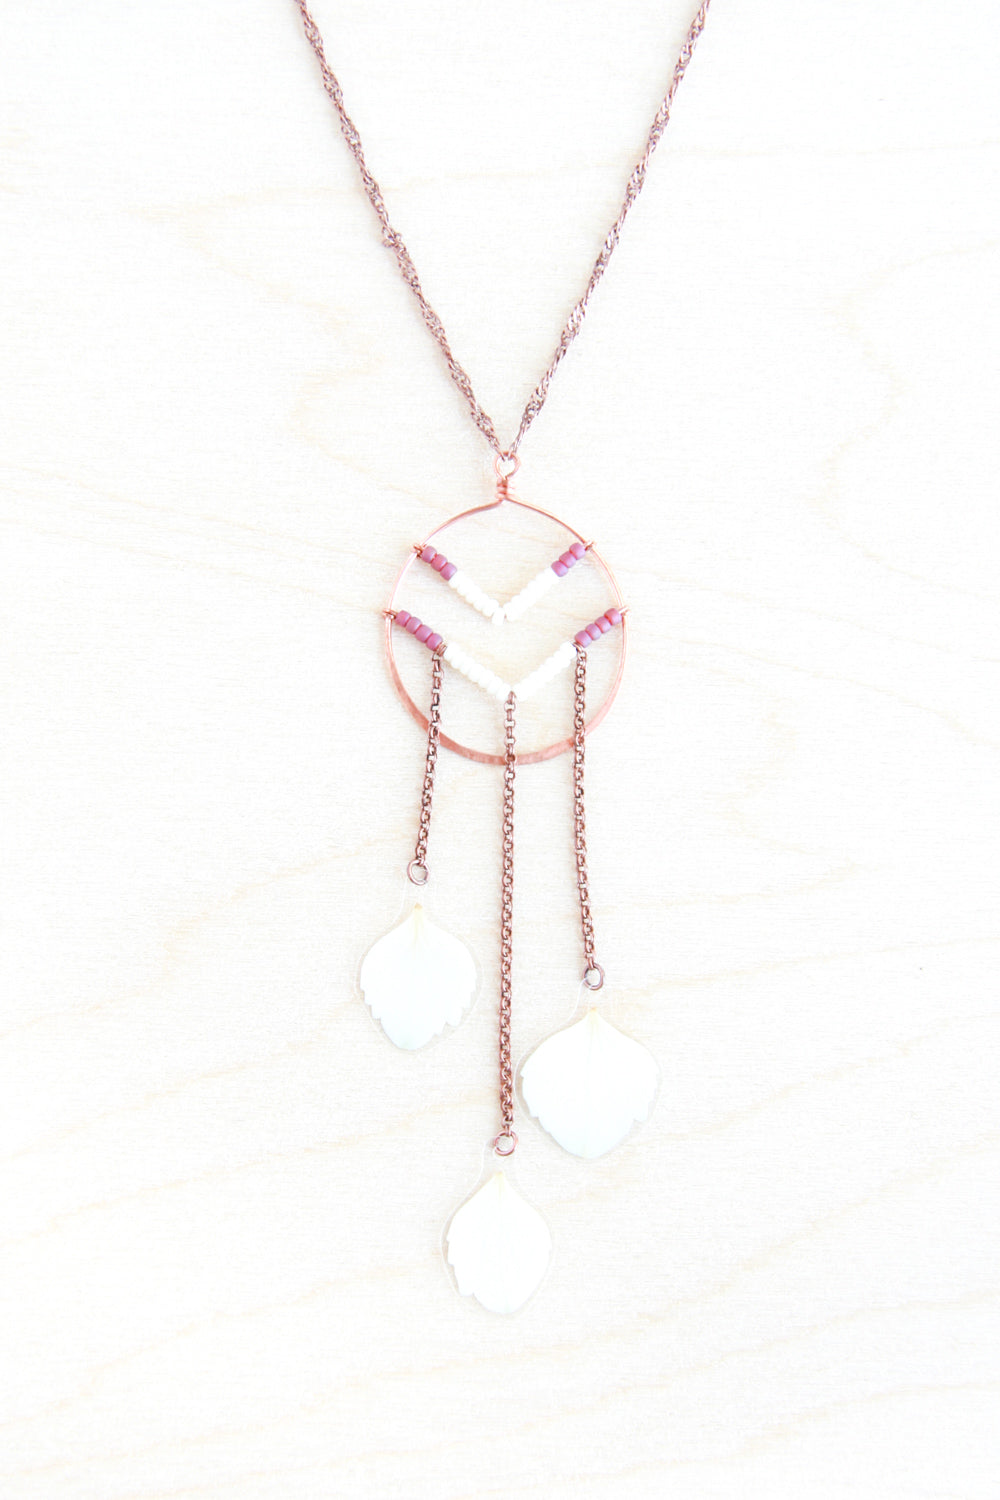 White Hydrangea Pressed Petal Necklace with Beaded Chevron & Copper Hoop - Cranberry & Cream